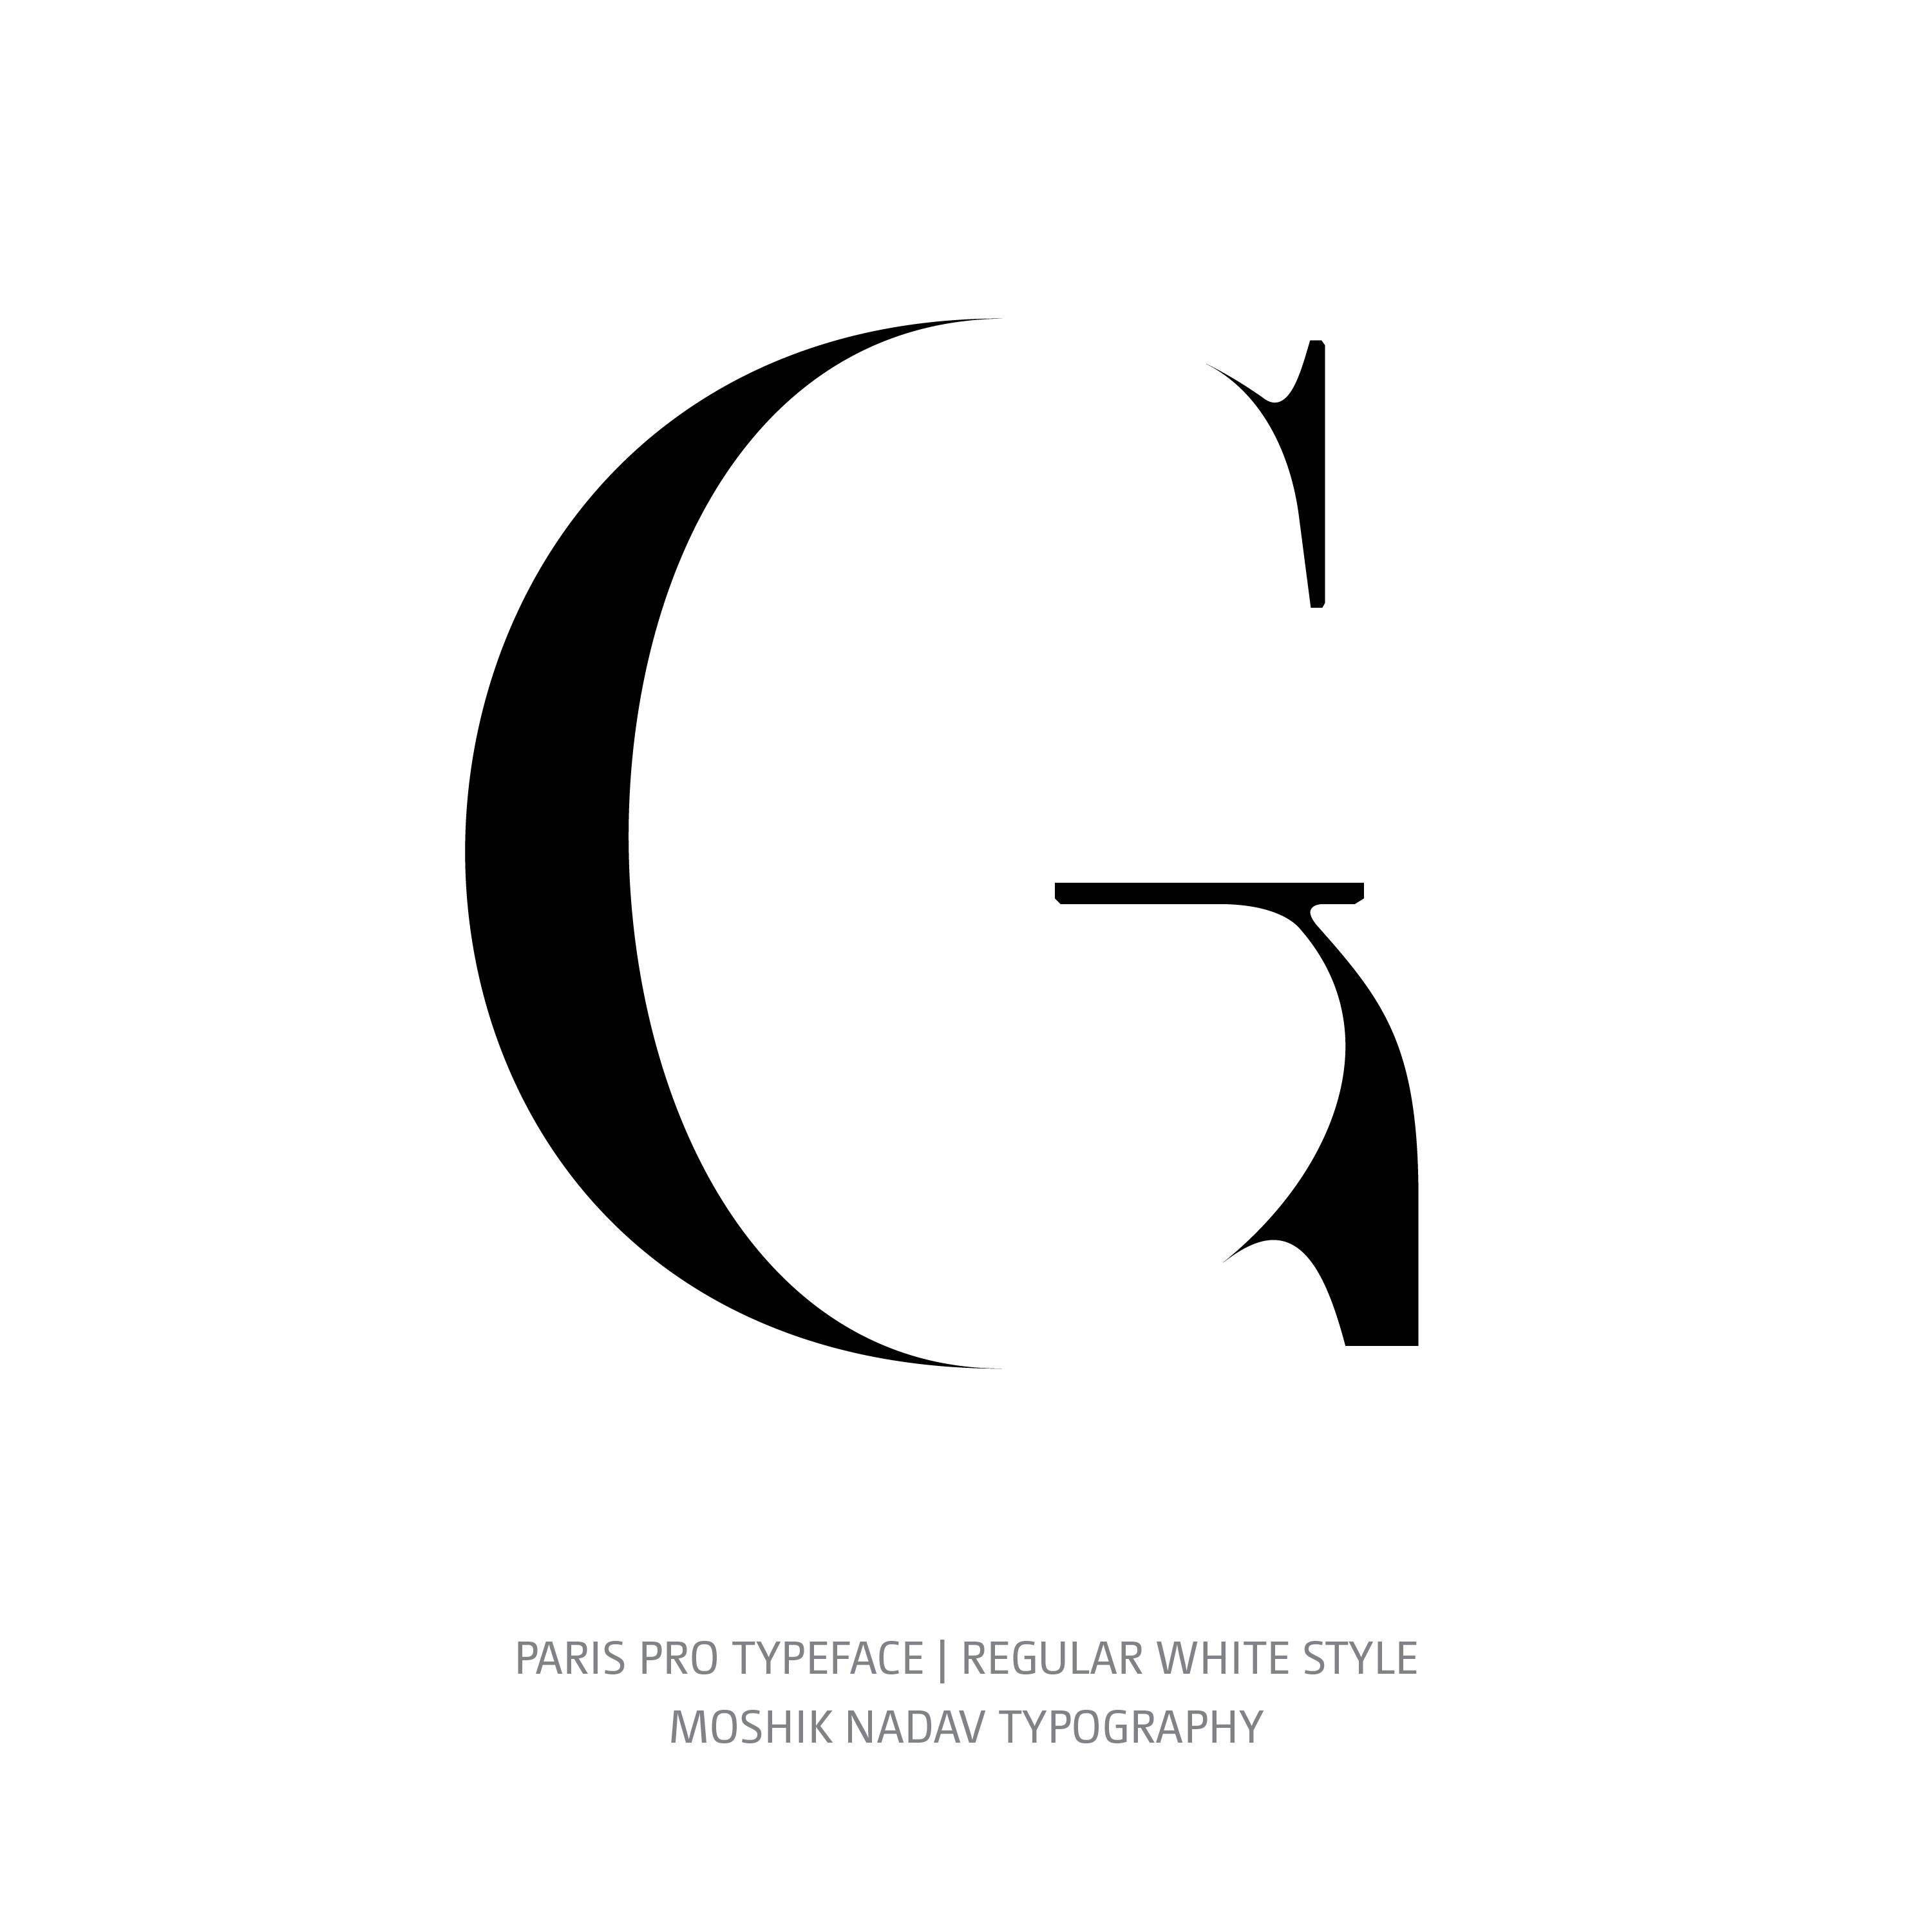 Paris Pro Typeface Regular White G